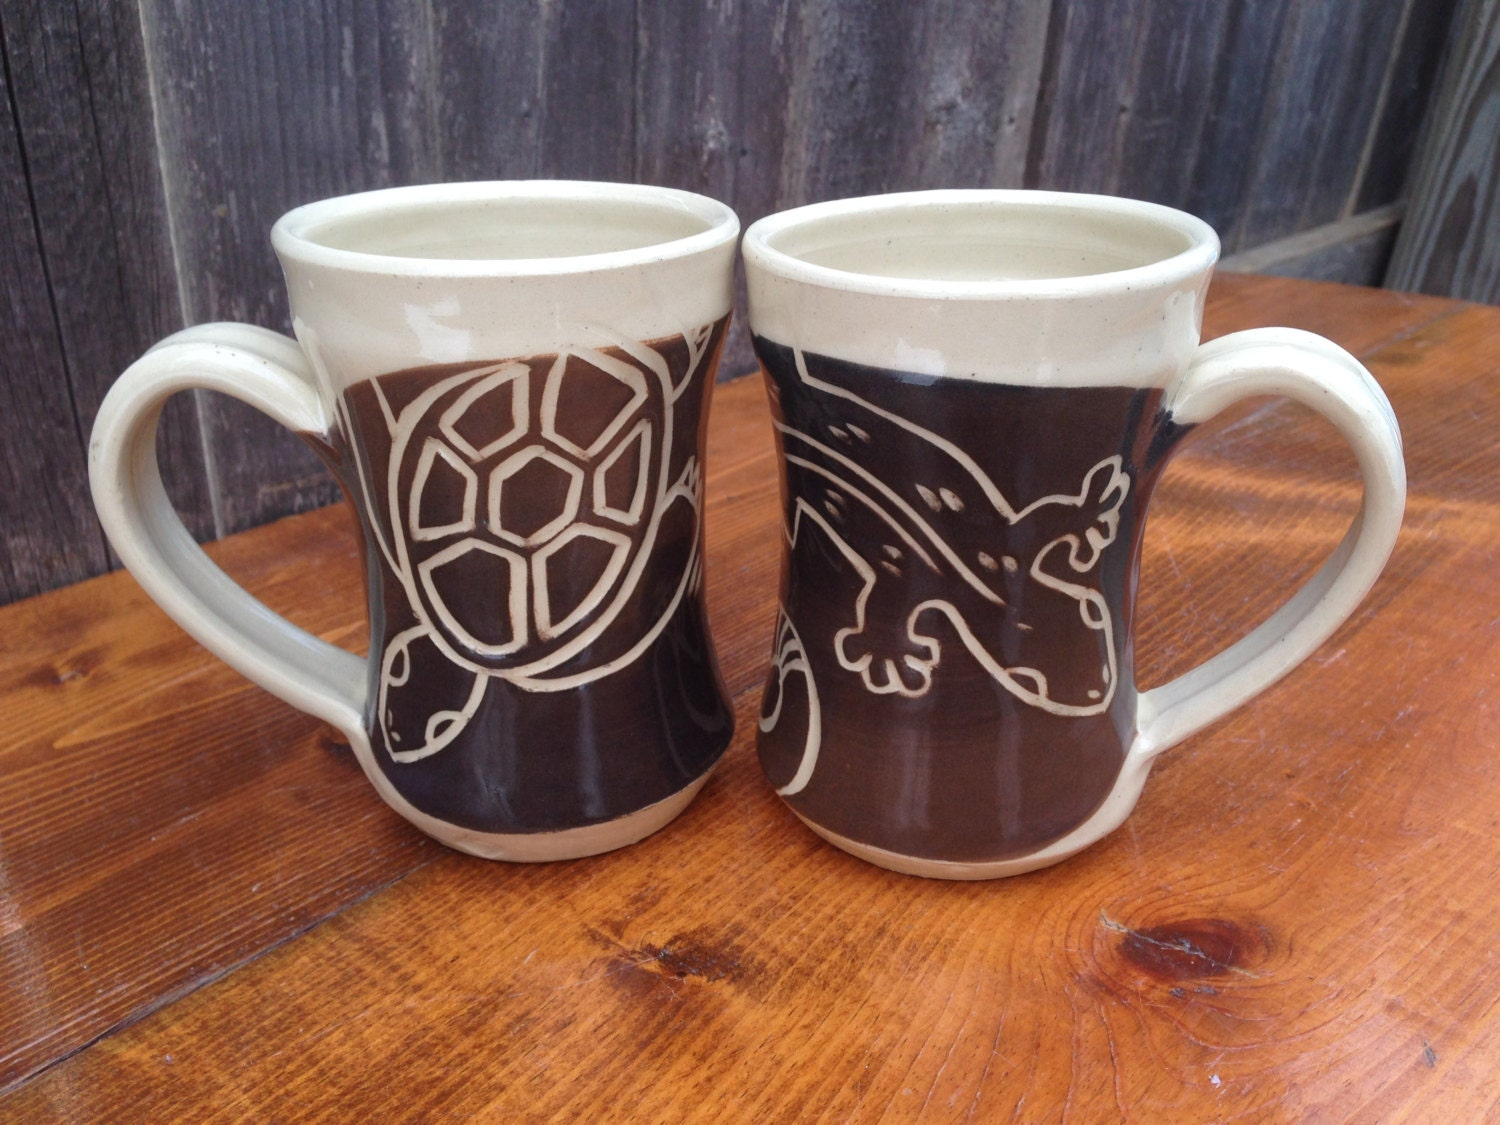 Turtle and Salamander Mugs / Set of 2 handmade pottery mugs in brown and black